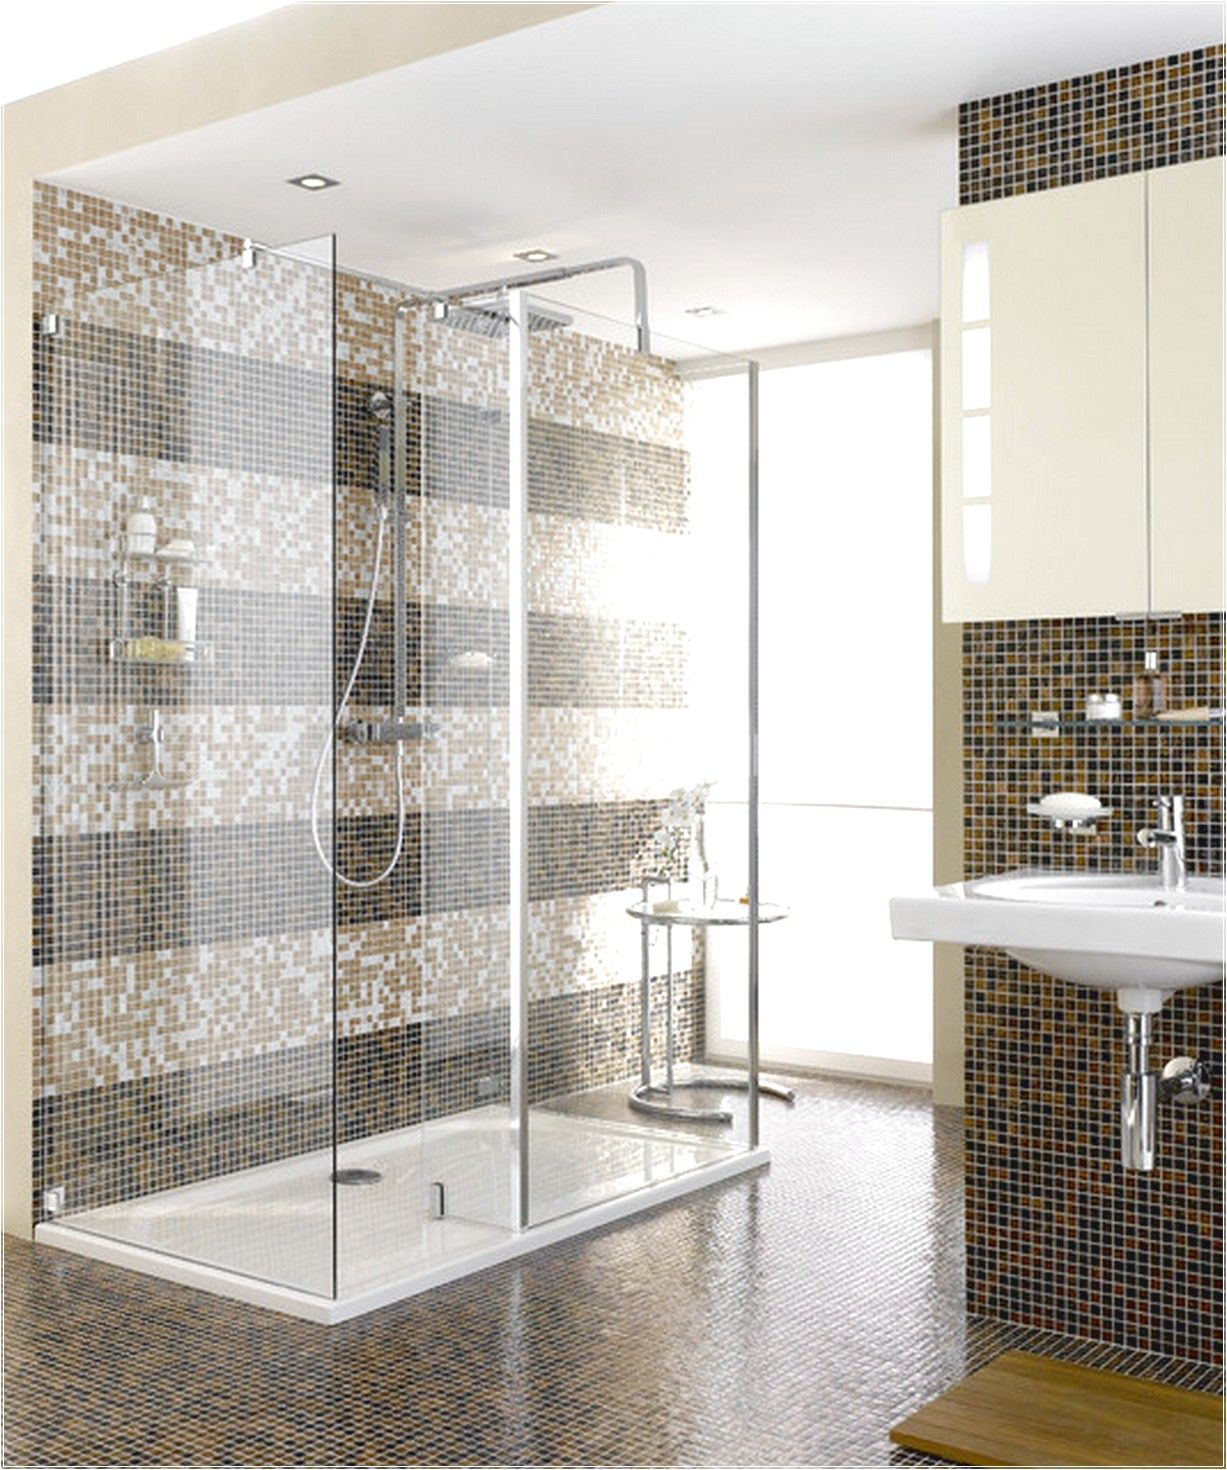 bathroom classic bathroom design with glass shower room stylish tile design ideas